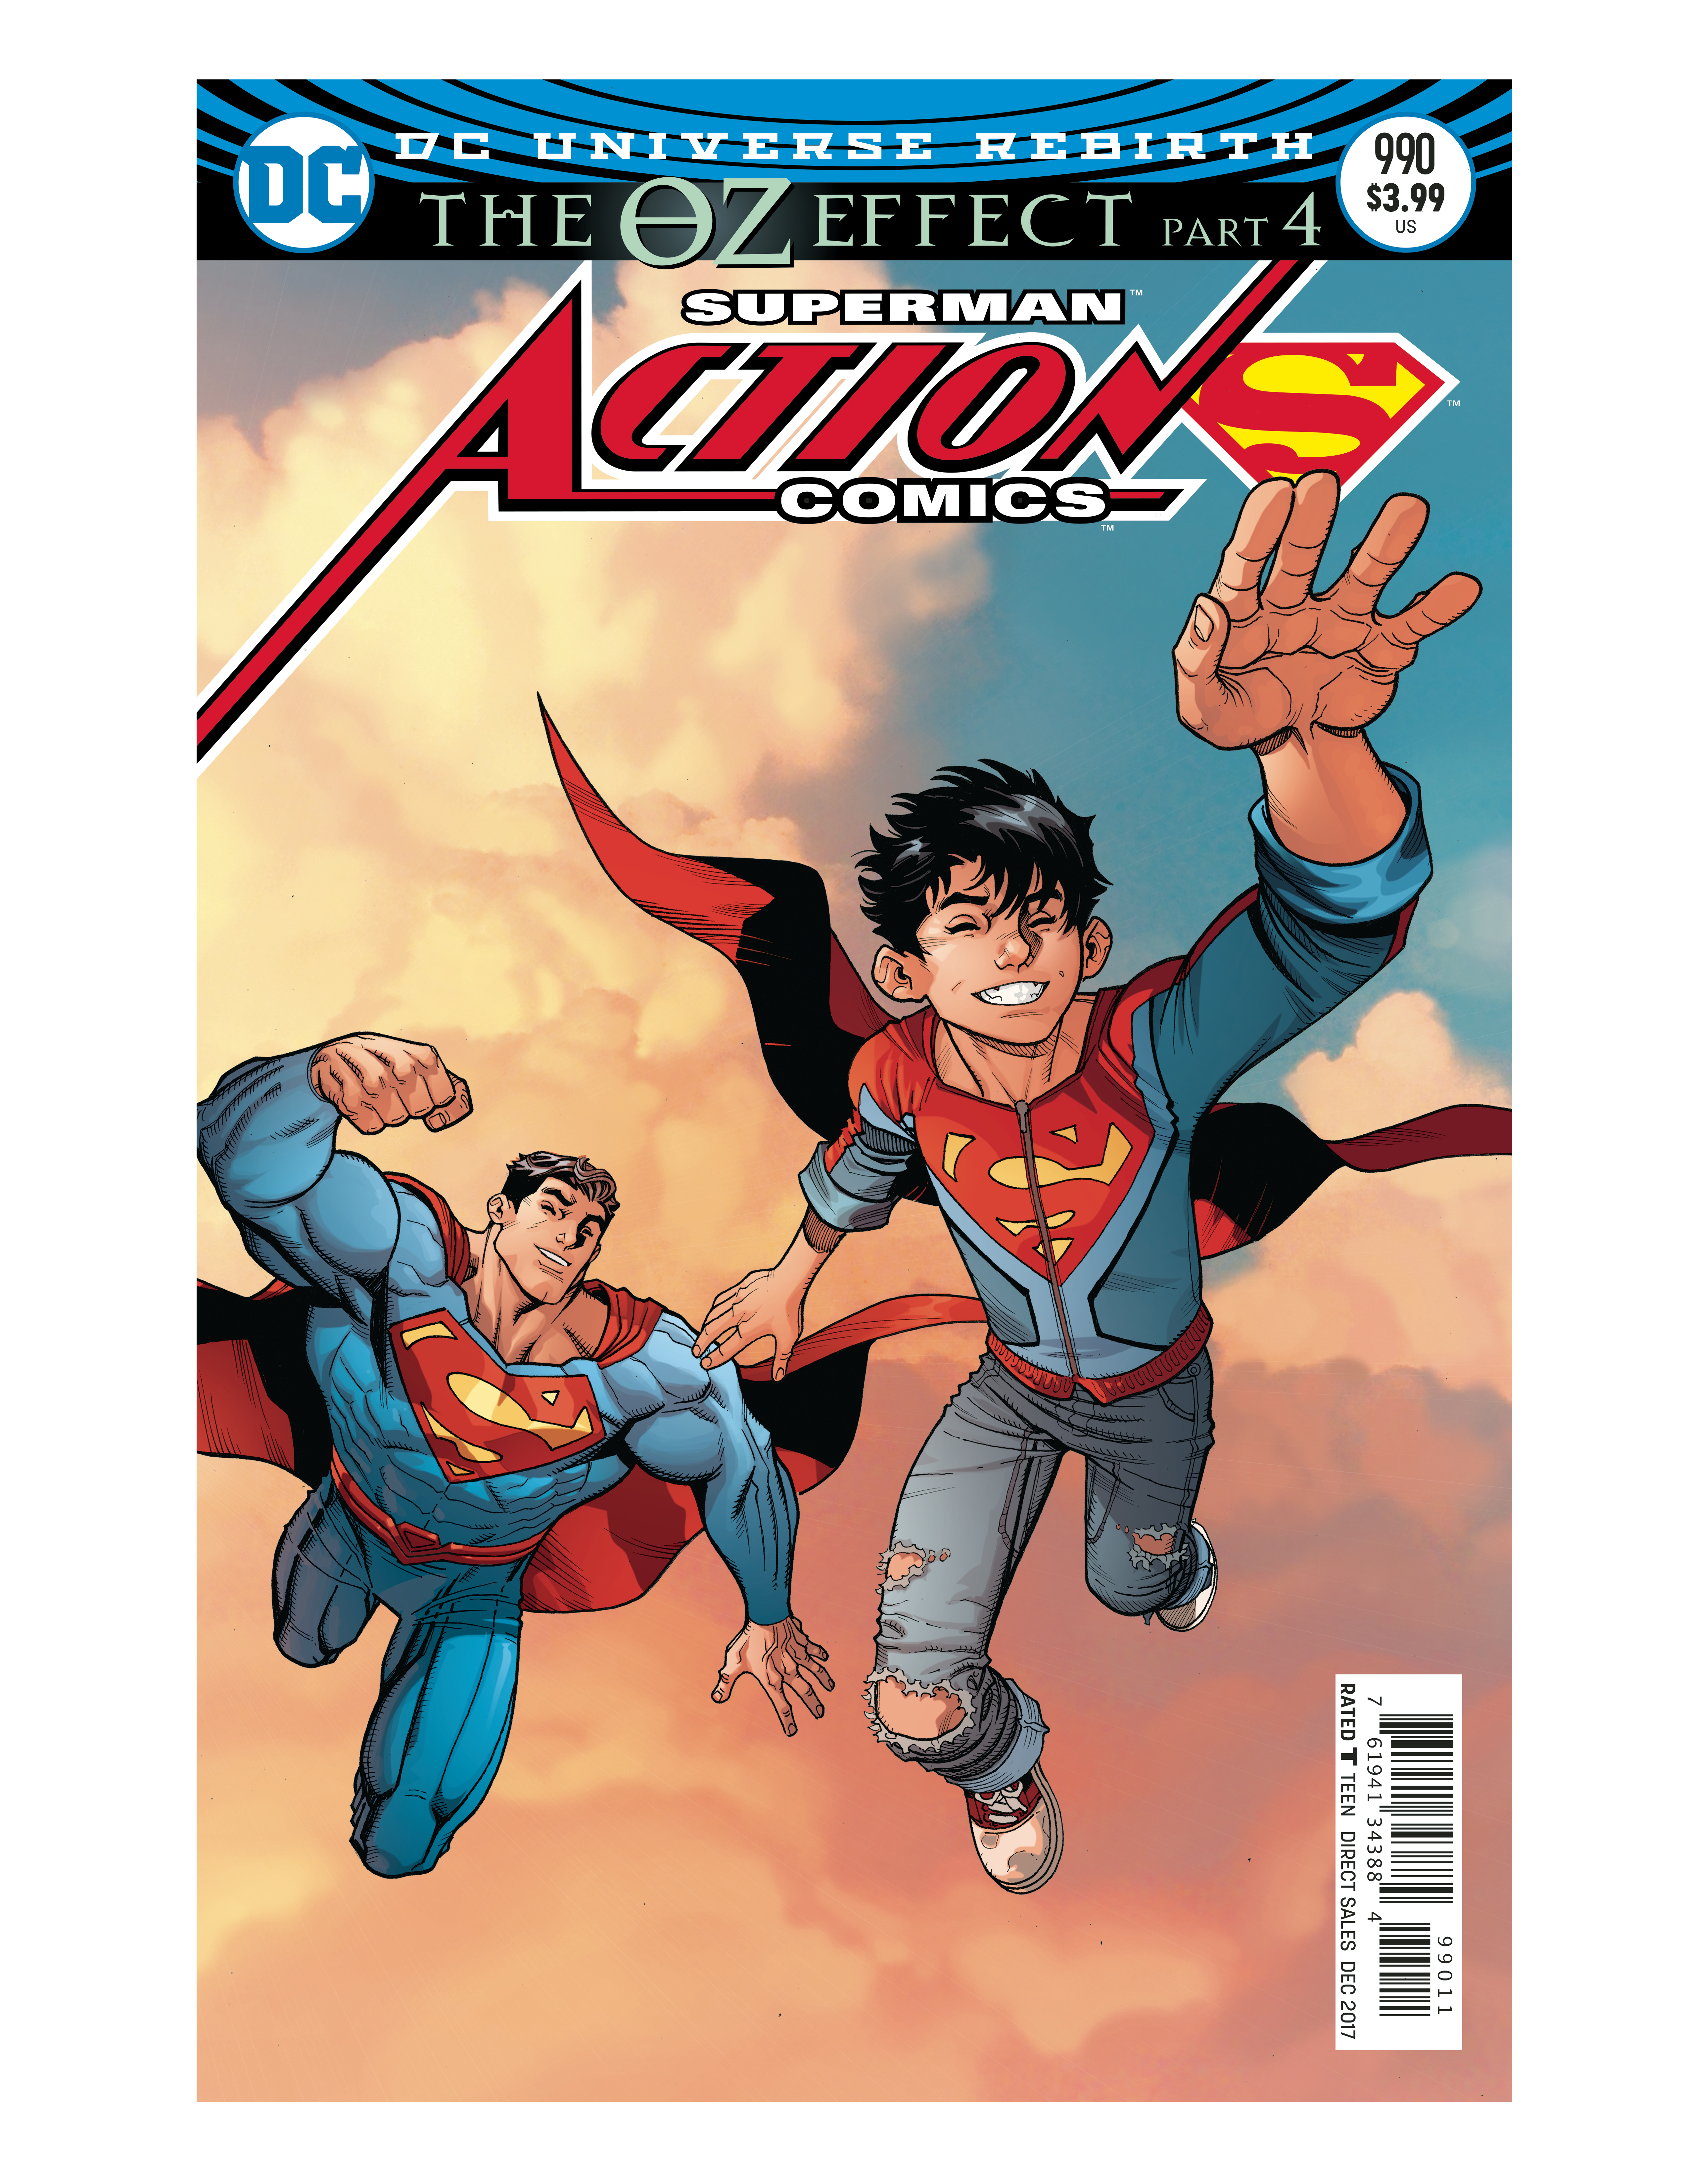 ACTION COMICS #990 LENTICULAR ED (OZ EFFECT)